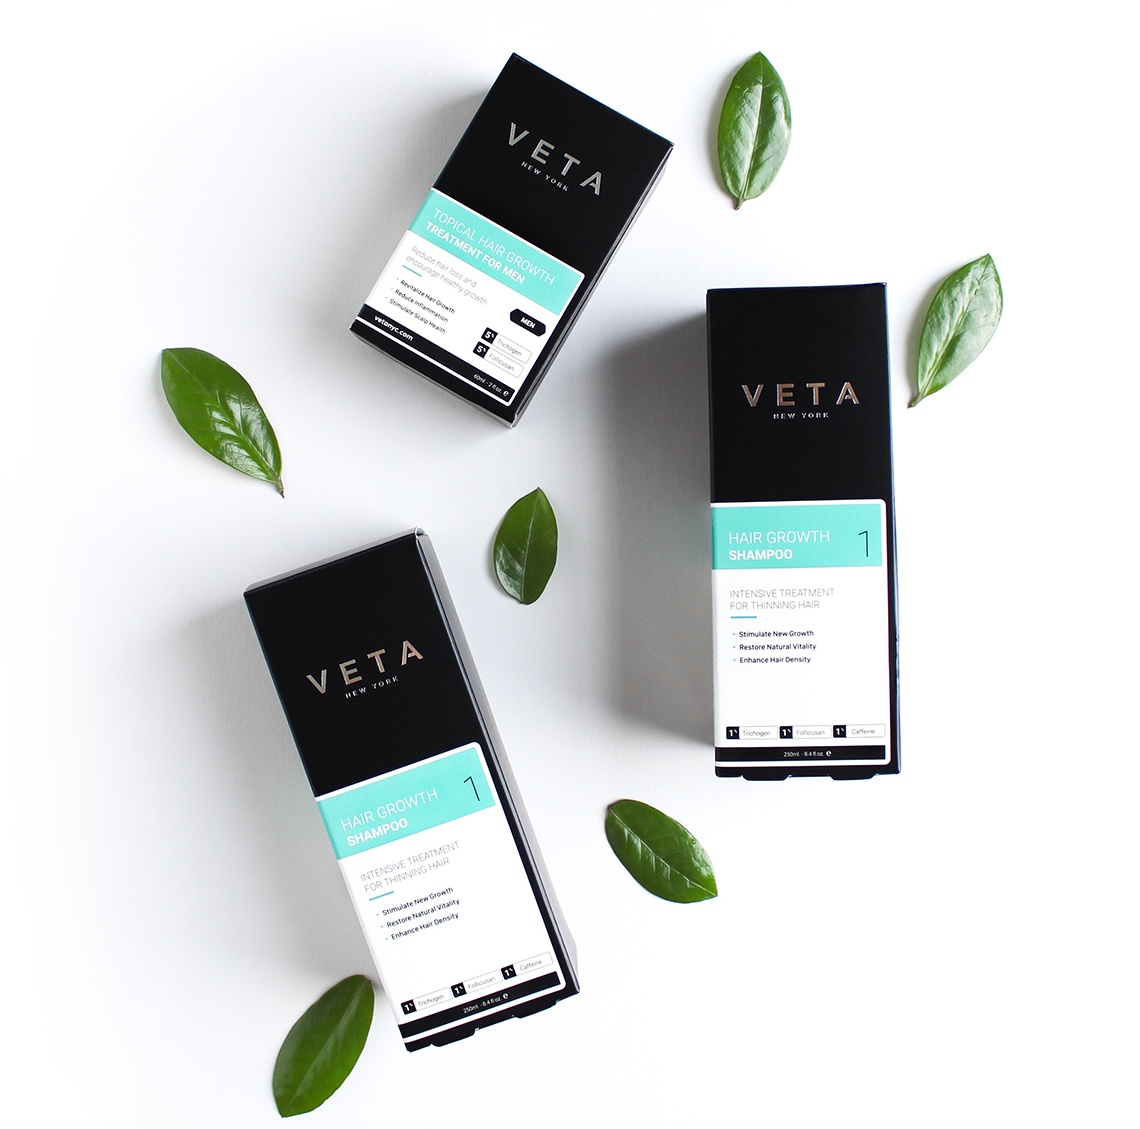 Veta - Hair Growth - Revitalize and Fortify your Hair